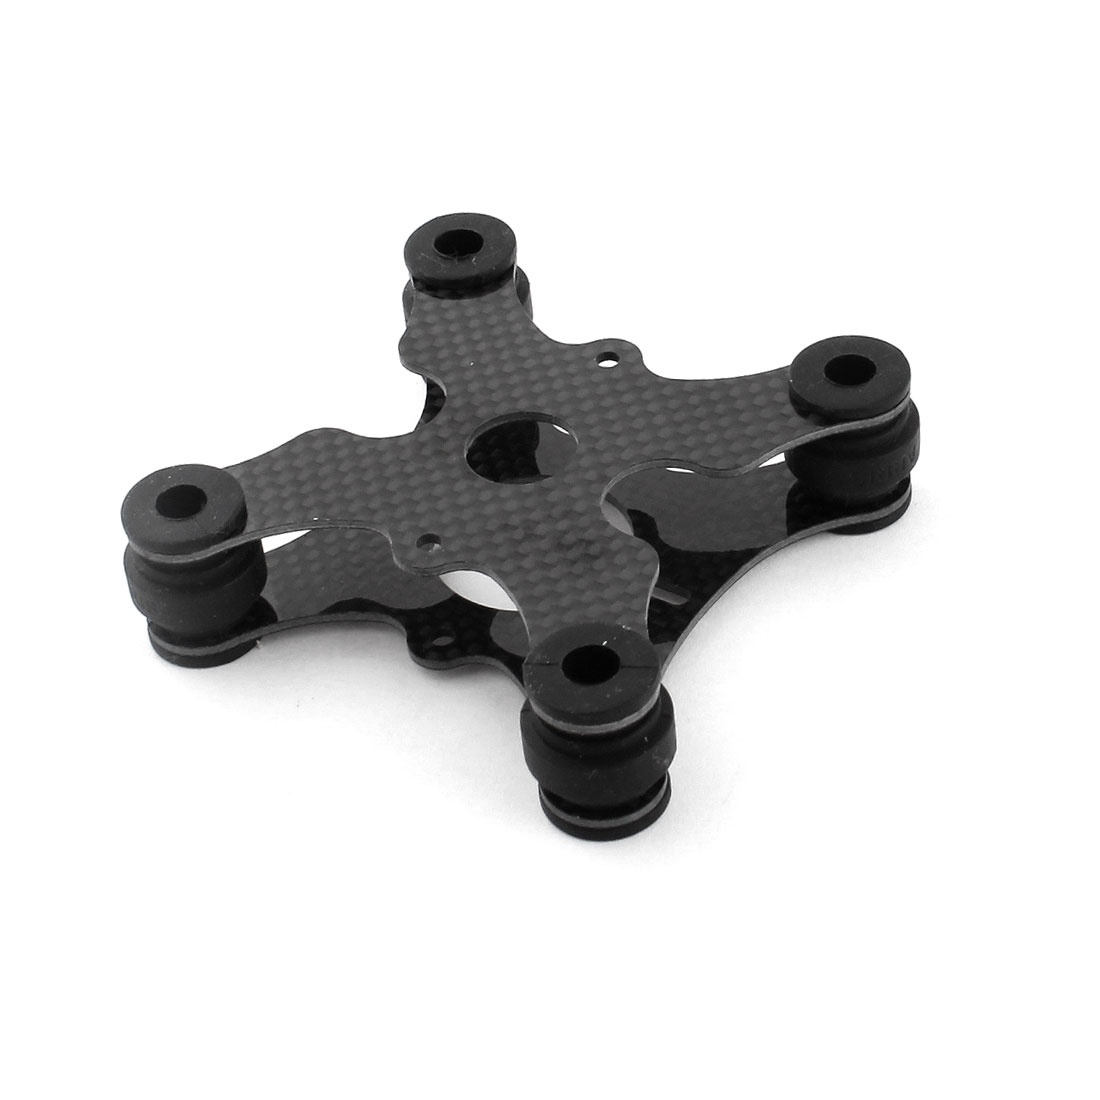 3K Carbon Fiber Flight Controller Anti-vibration Damper Plate Black for RC DJI Phantom